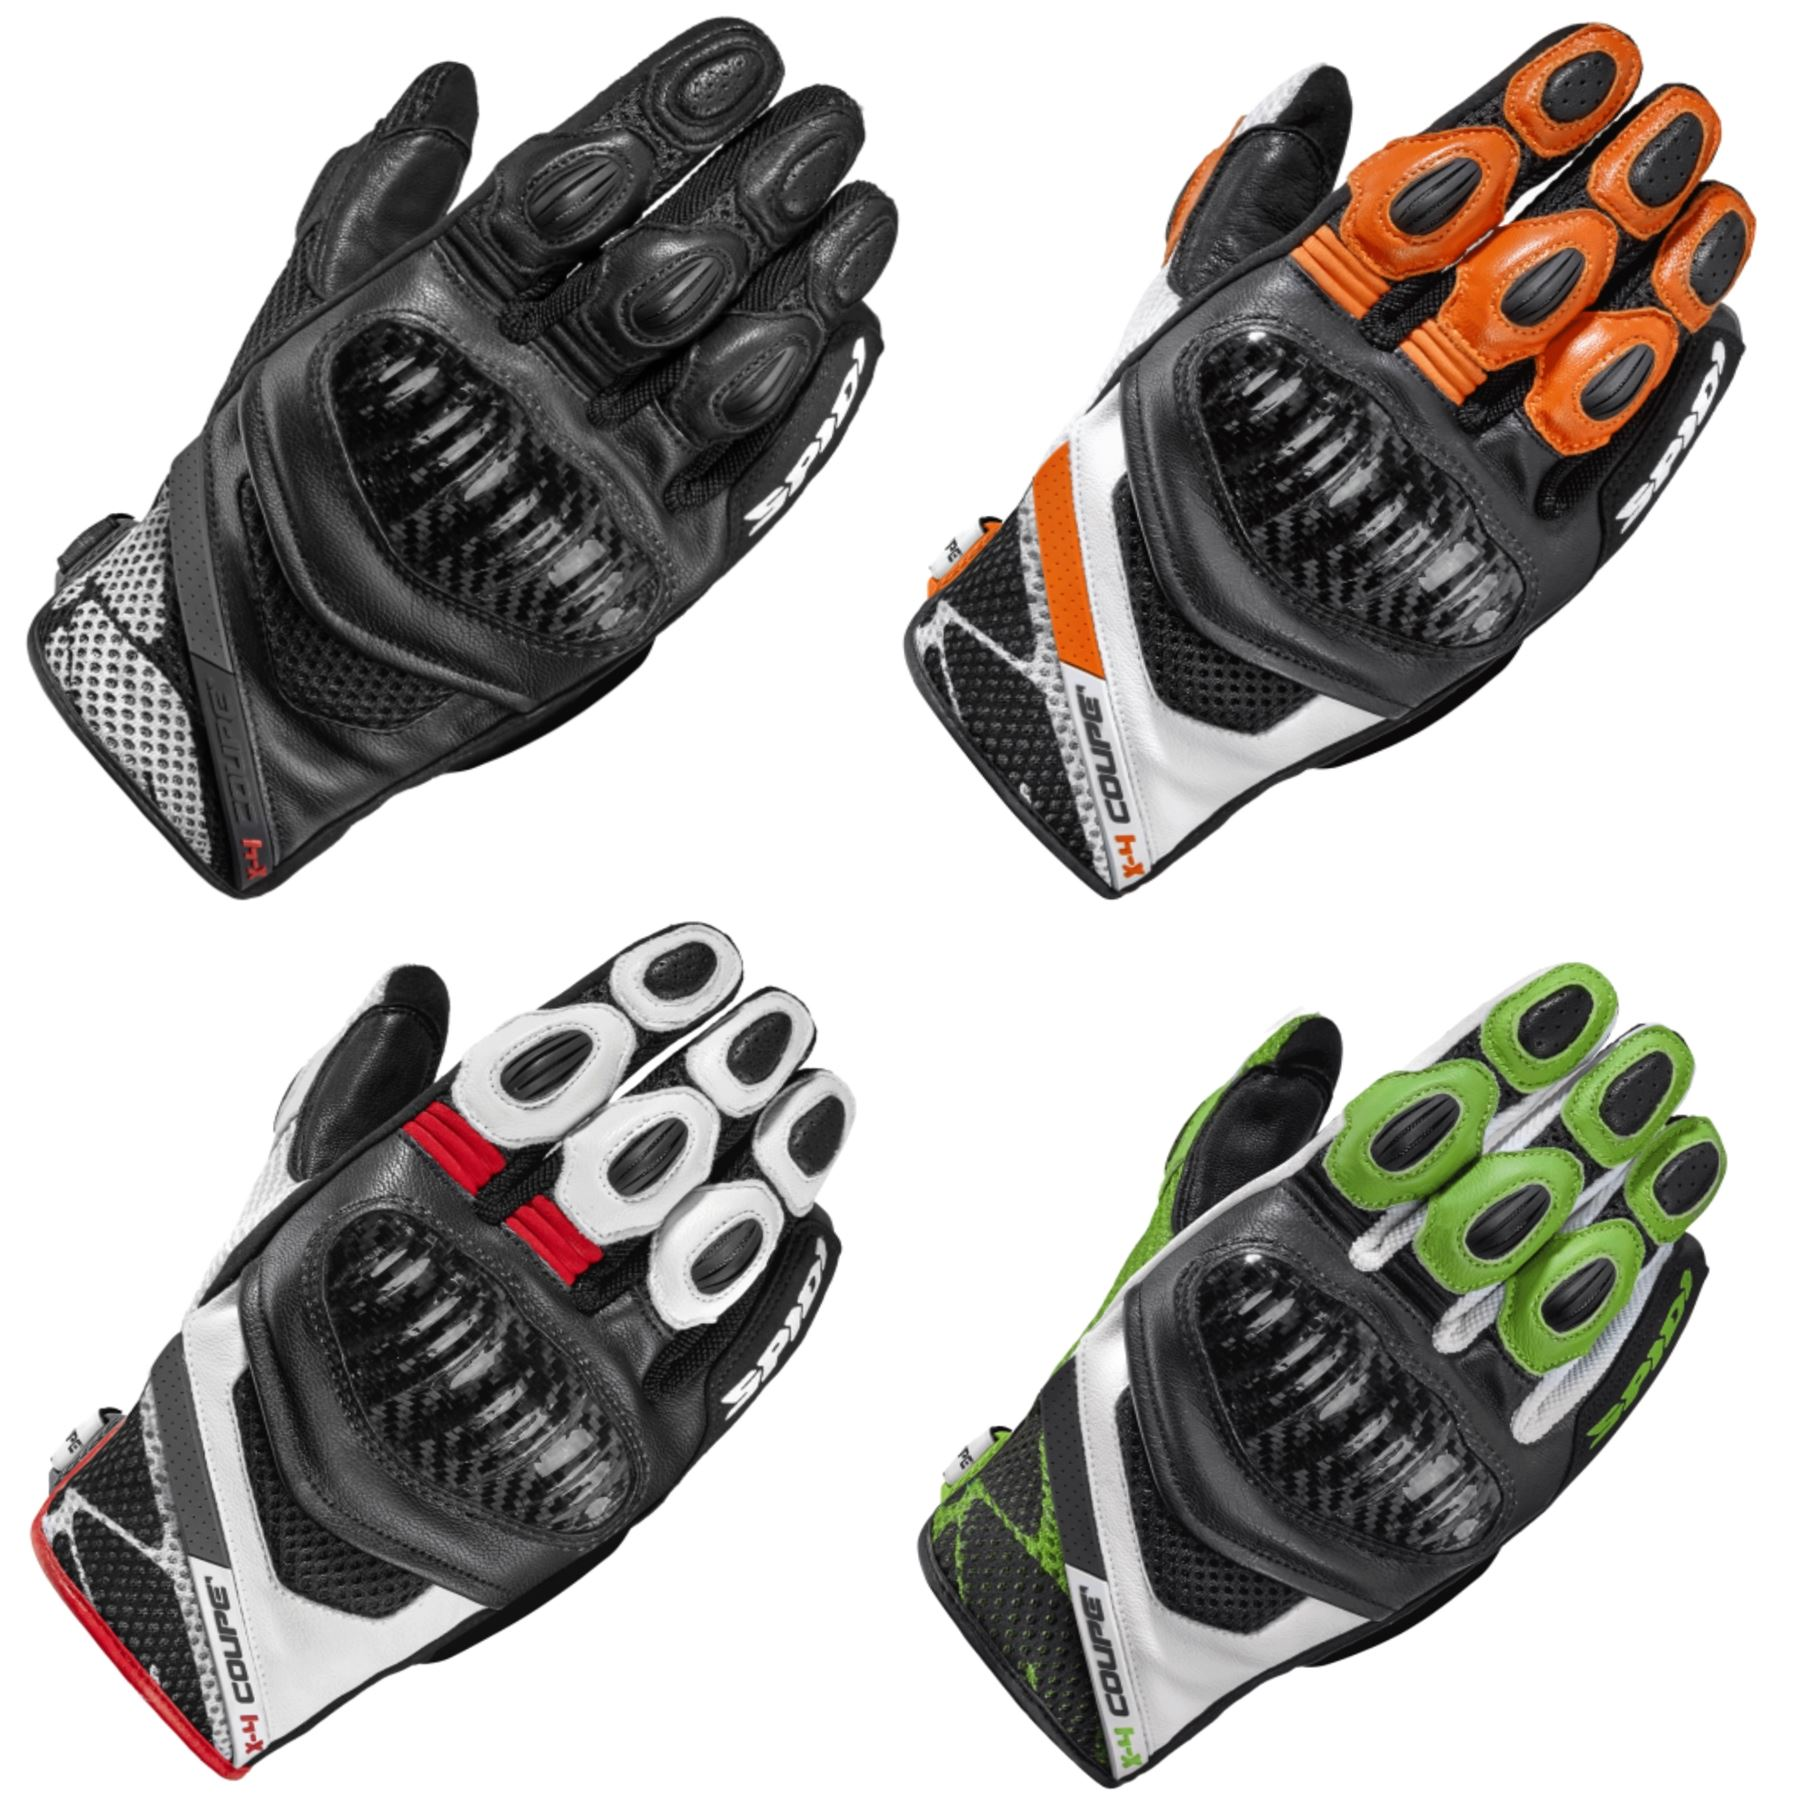 Spidi-X4-Coupe-Textile-Mix-Vented-CE-Motorcycle-Gloves-Touchscreen-CE